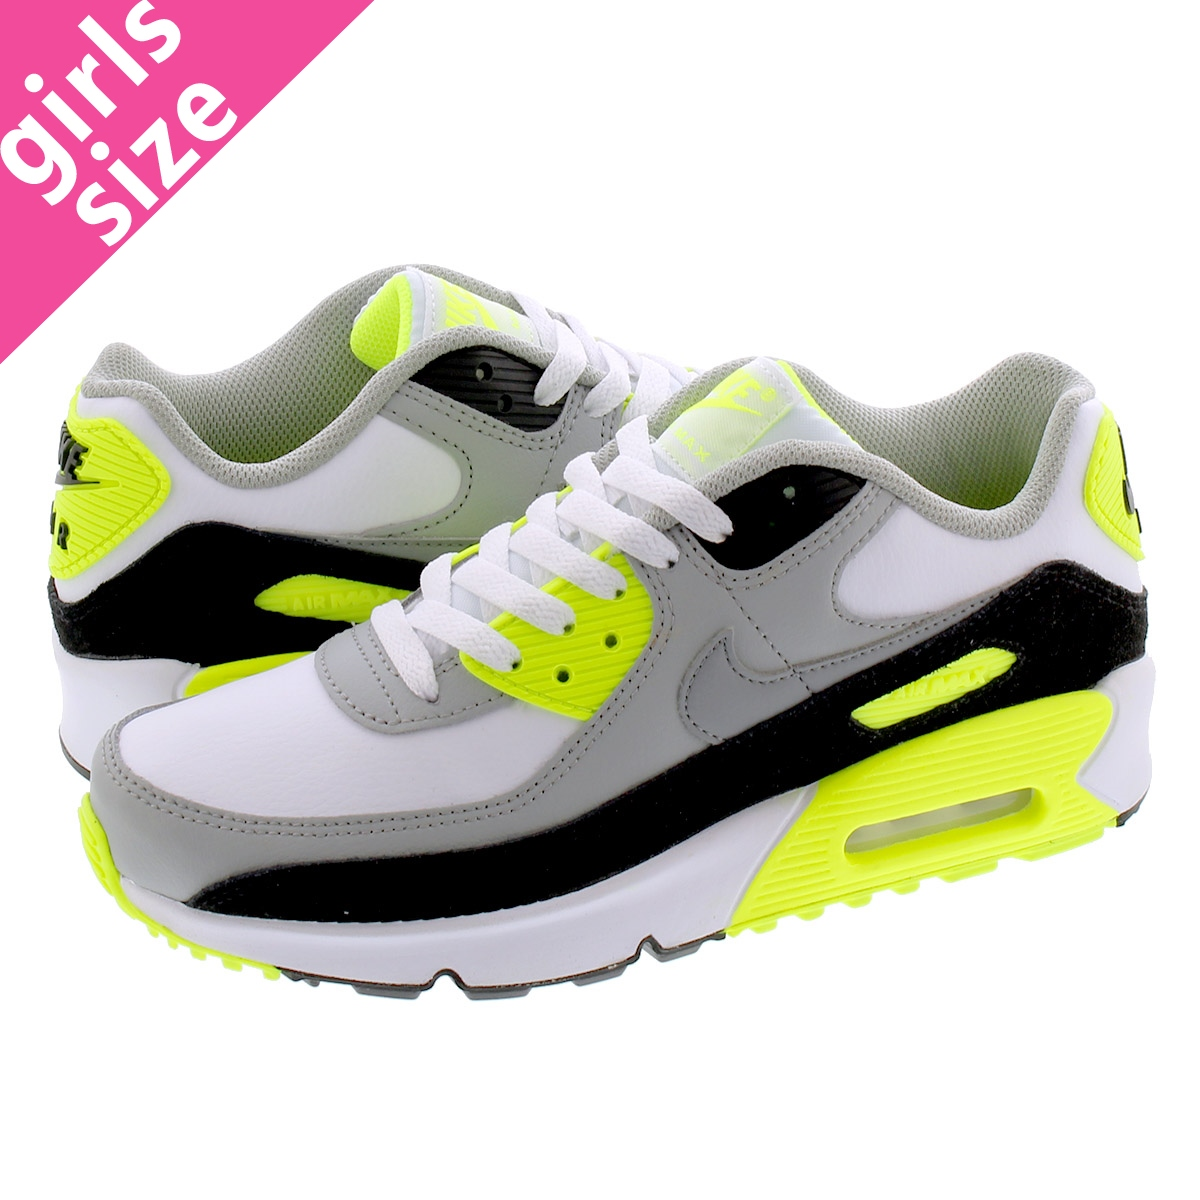 NIKE AIR MAX 90 LTR GS ナイキ エア マックス 90 レザー GS WHITE/PARTICLE GREY/VOLT/BLACK cd6864-101